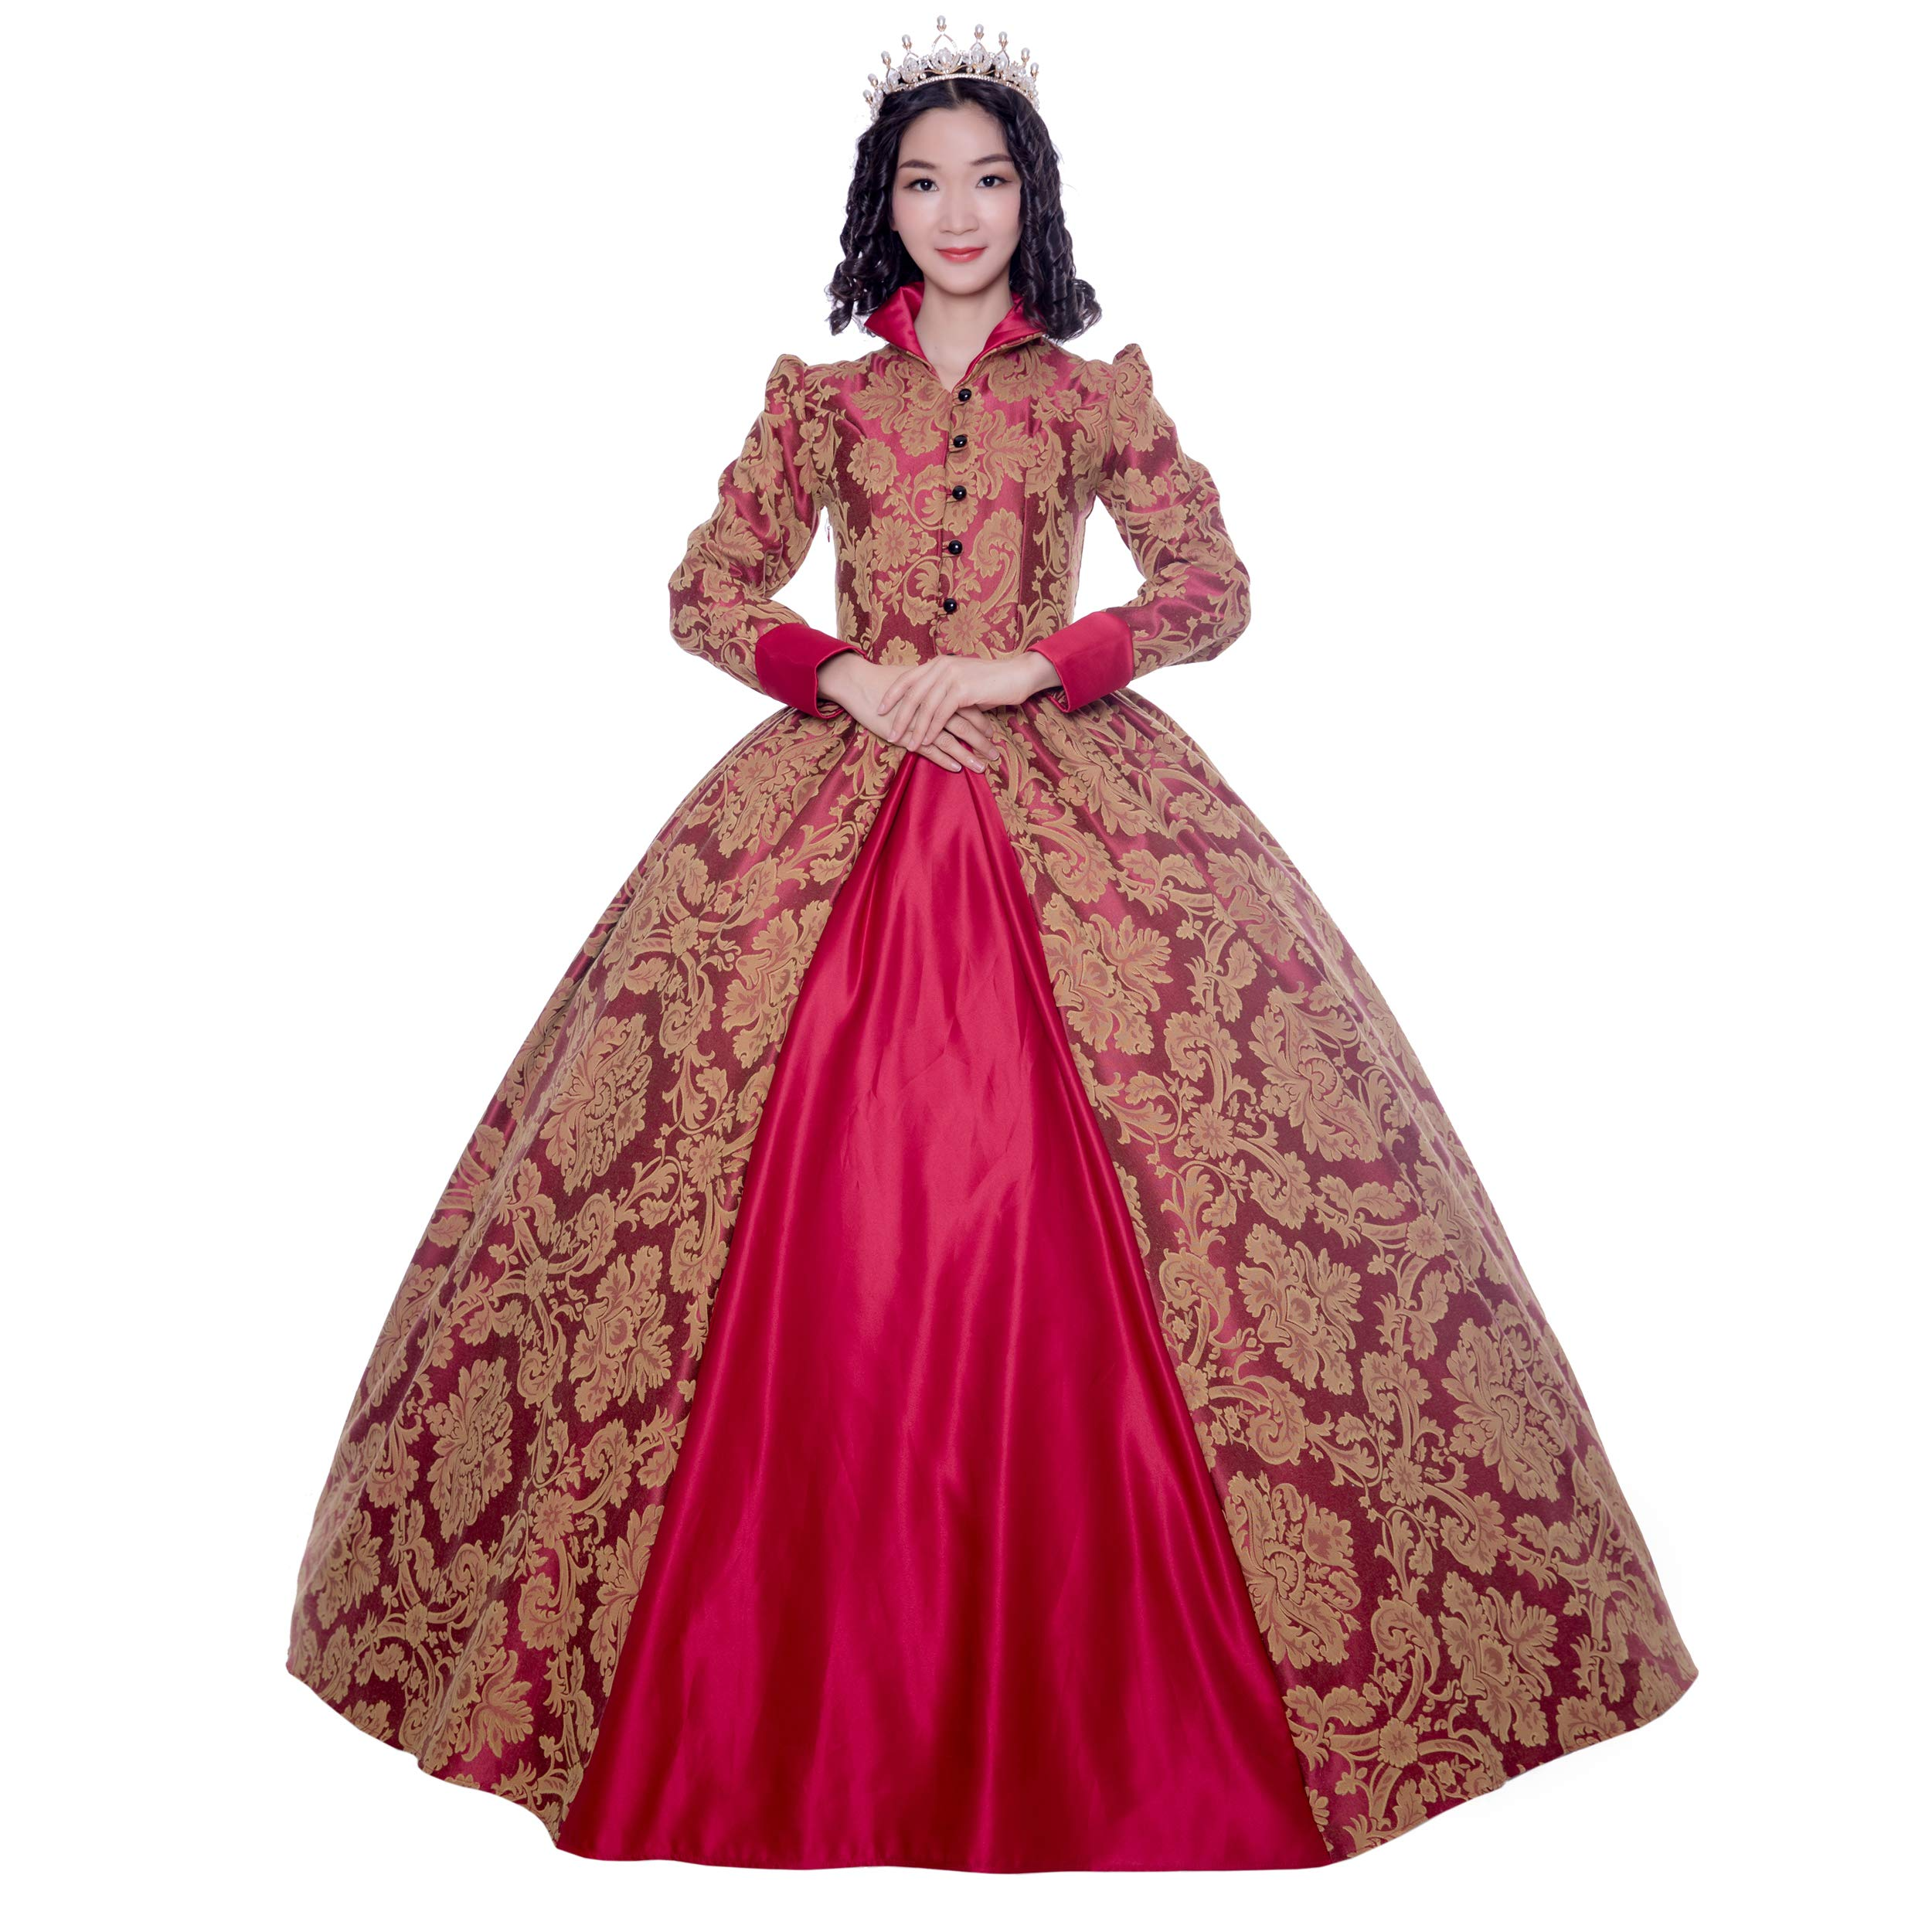 974f5f7d3227 Renaissance Queen Elizabeth I/Tudor Gothic Jacquard Fantasy Dress Game of  Thrones Gown Halloween Costumes (3XL, Red)